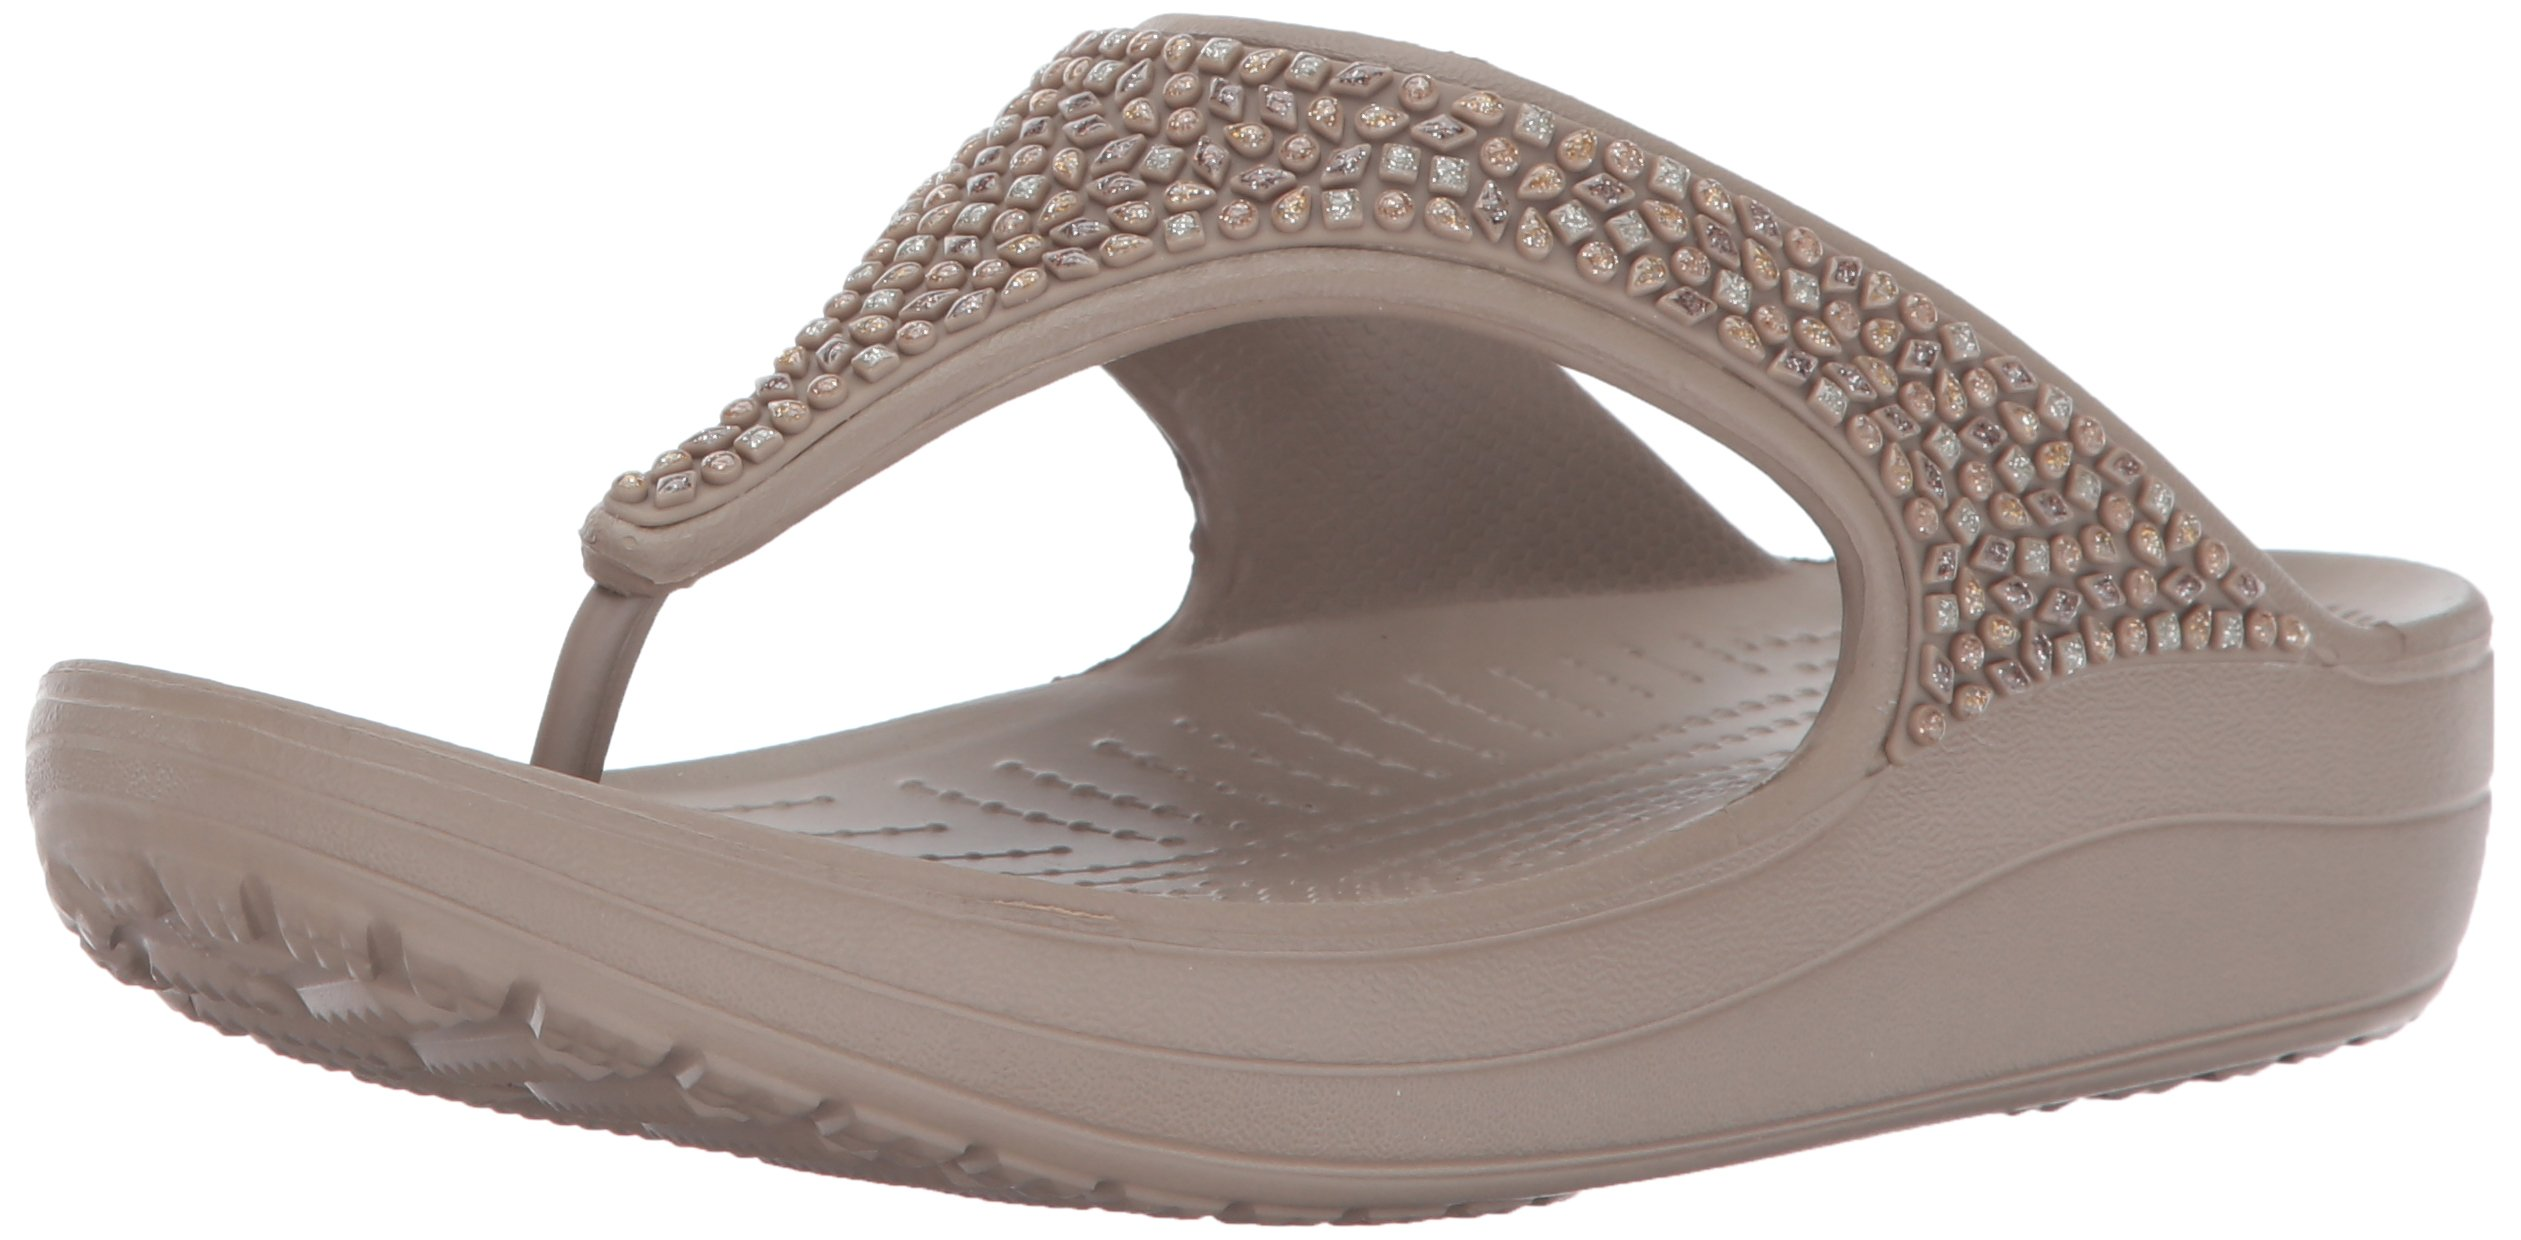 2f4d631a534f Galleon - Crocs Women s Sloane Embellished Flip Flop